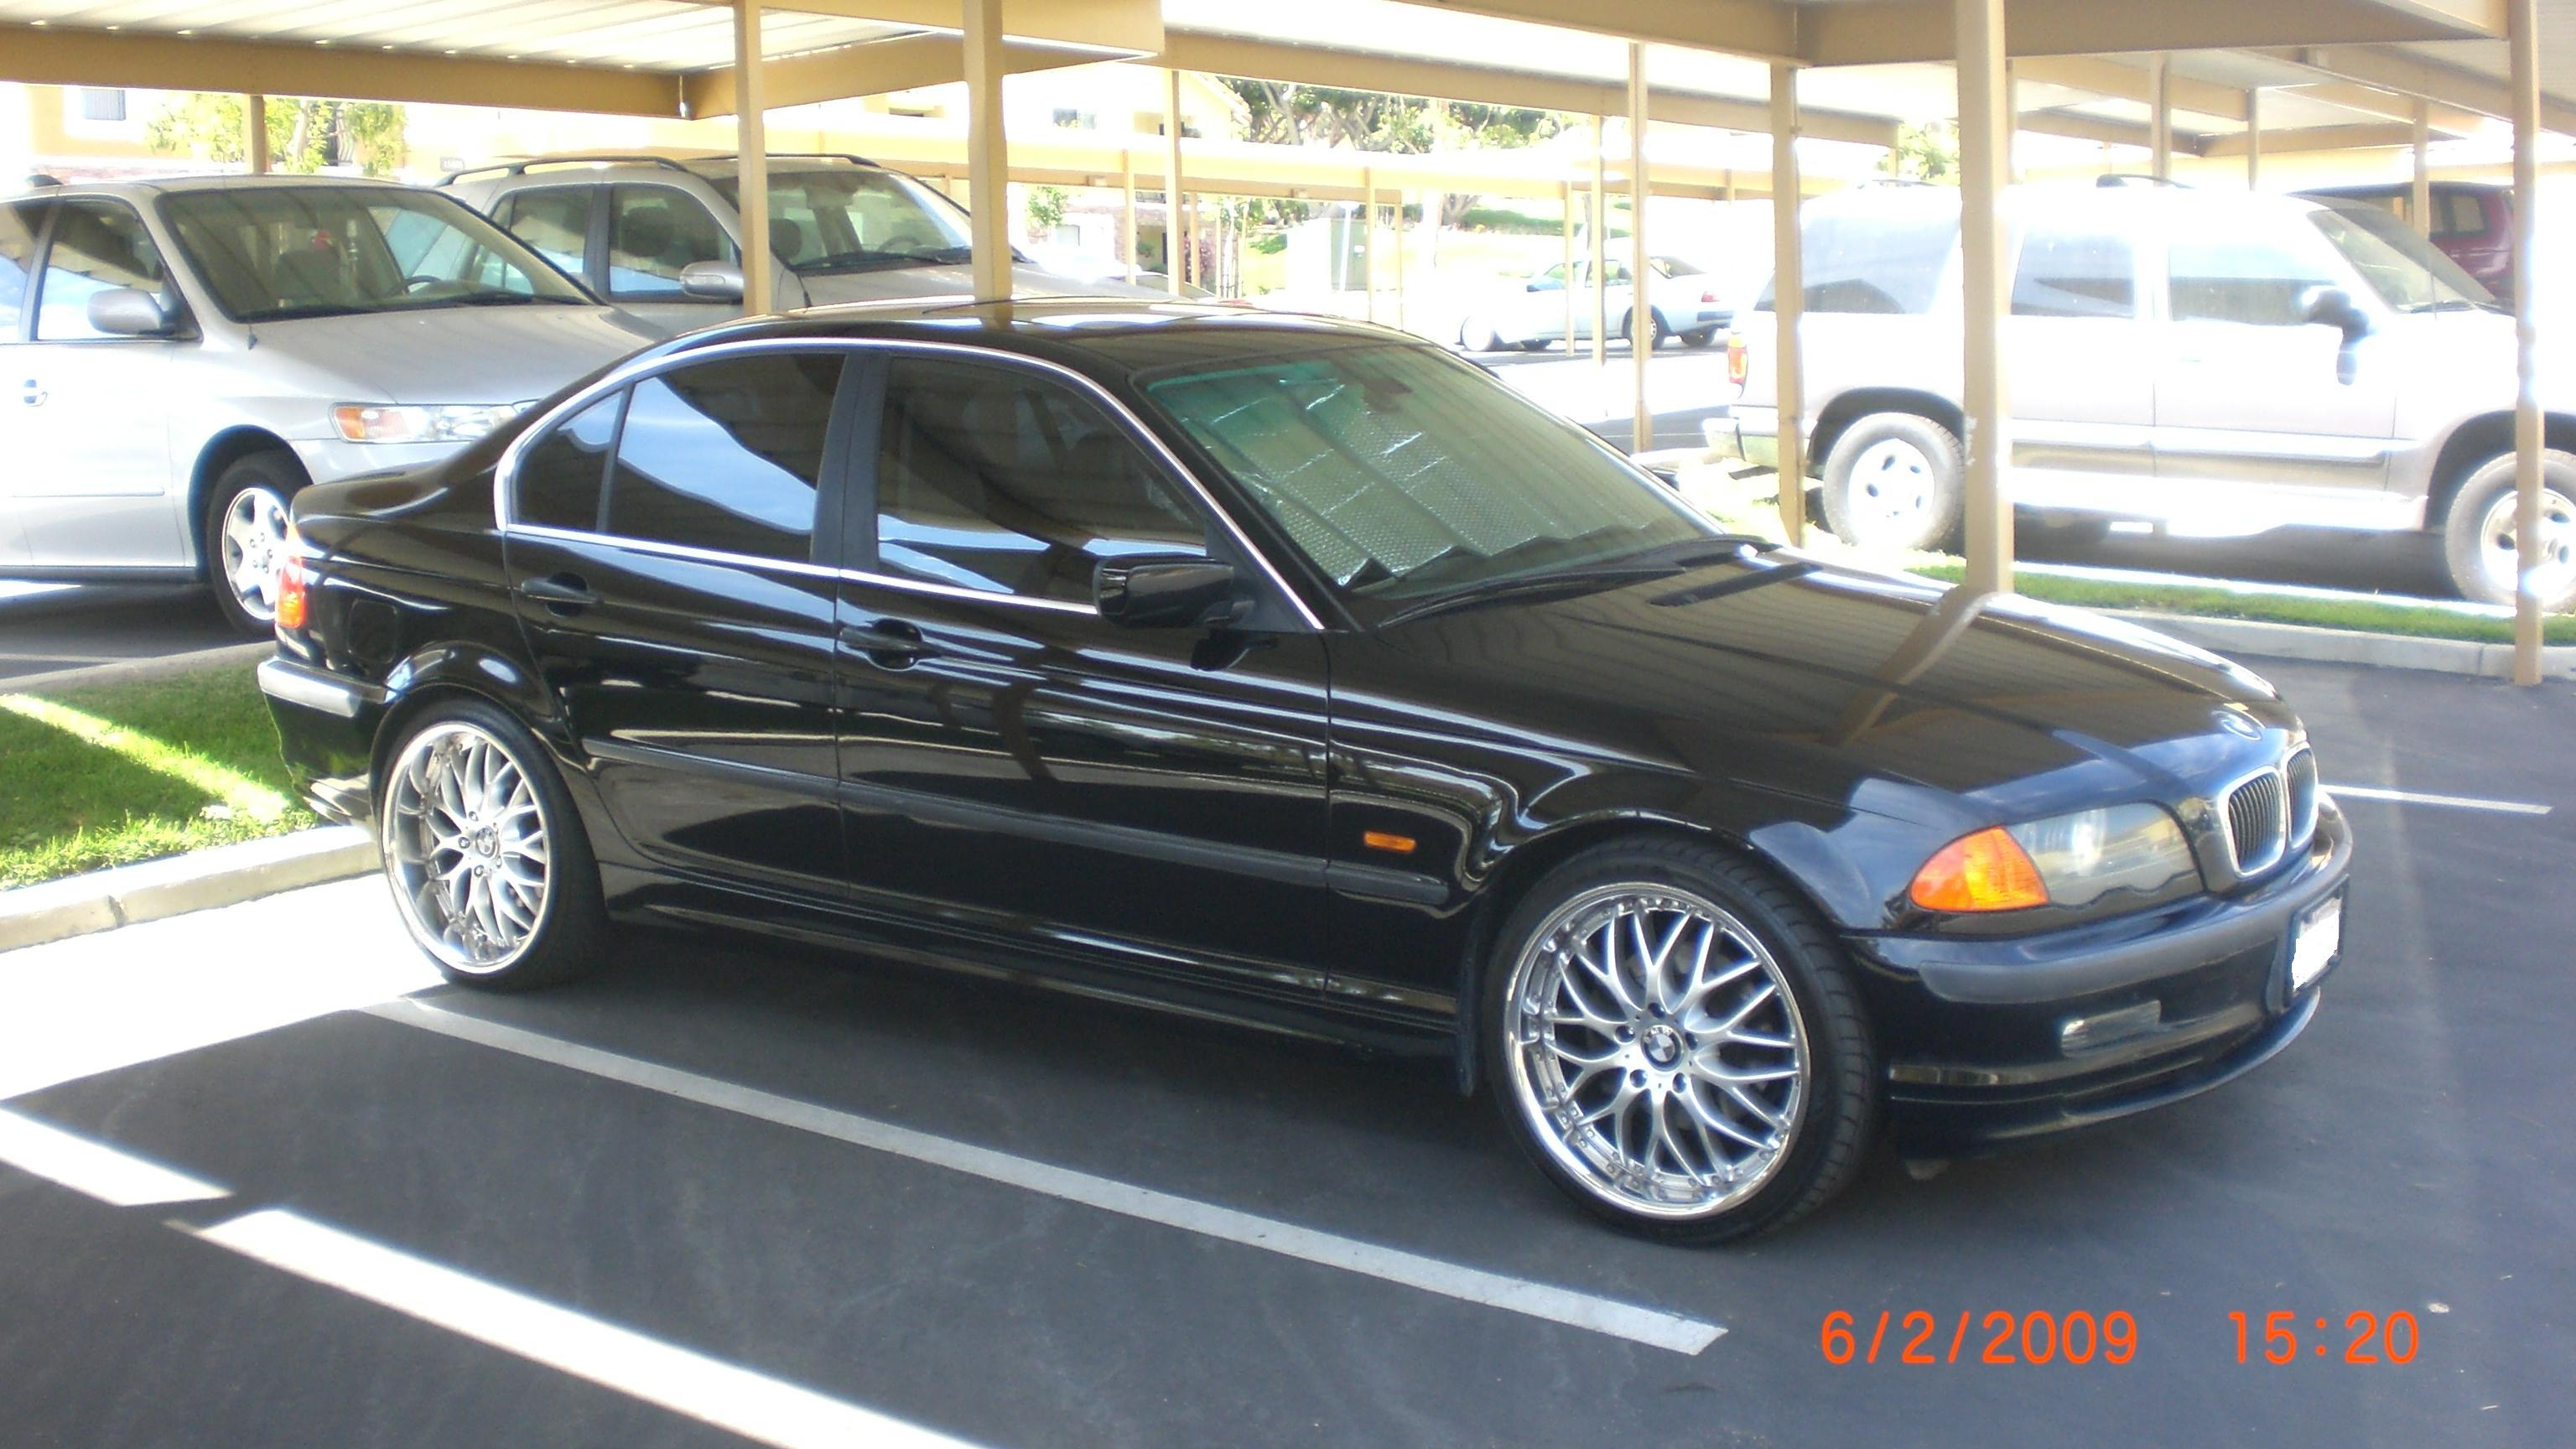 328ie46 1999 BMW 3 Series Specs Photos Modification Info at